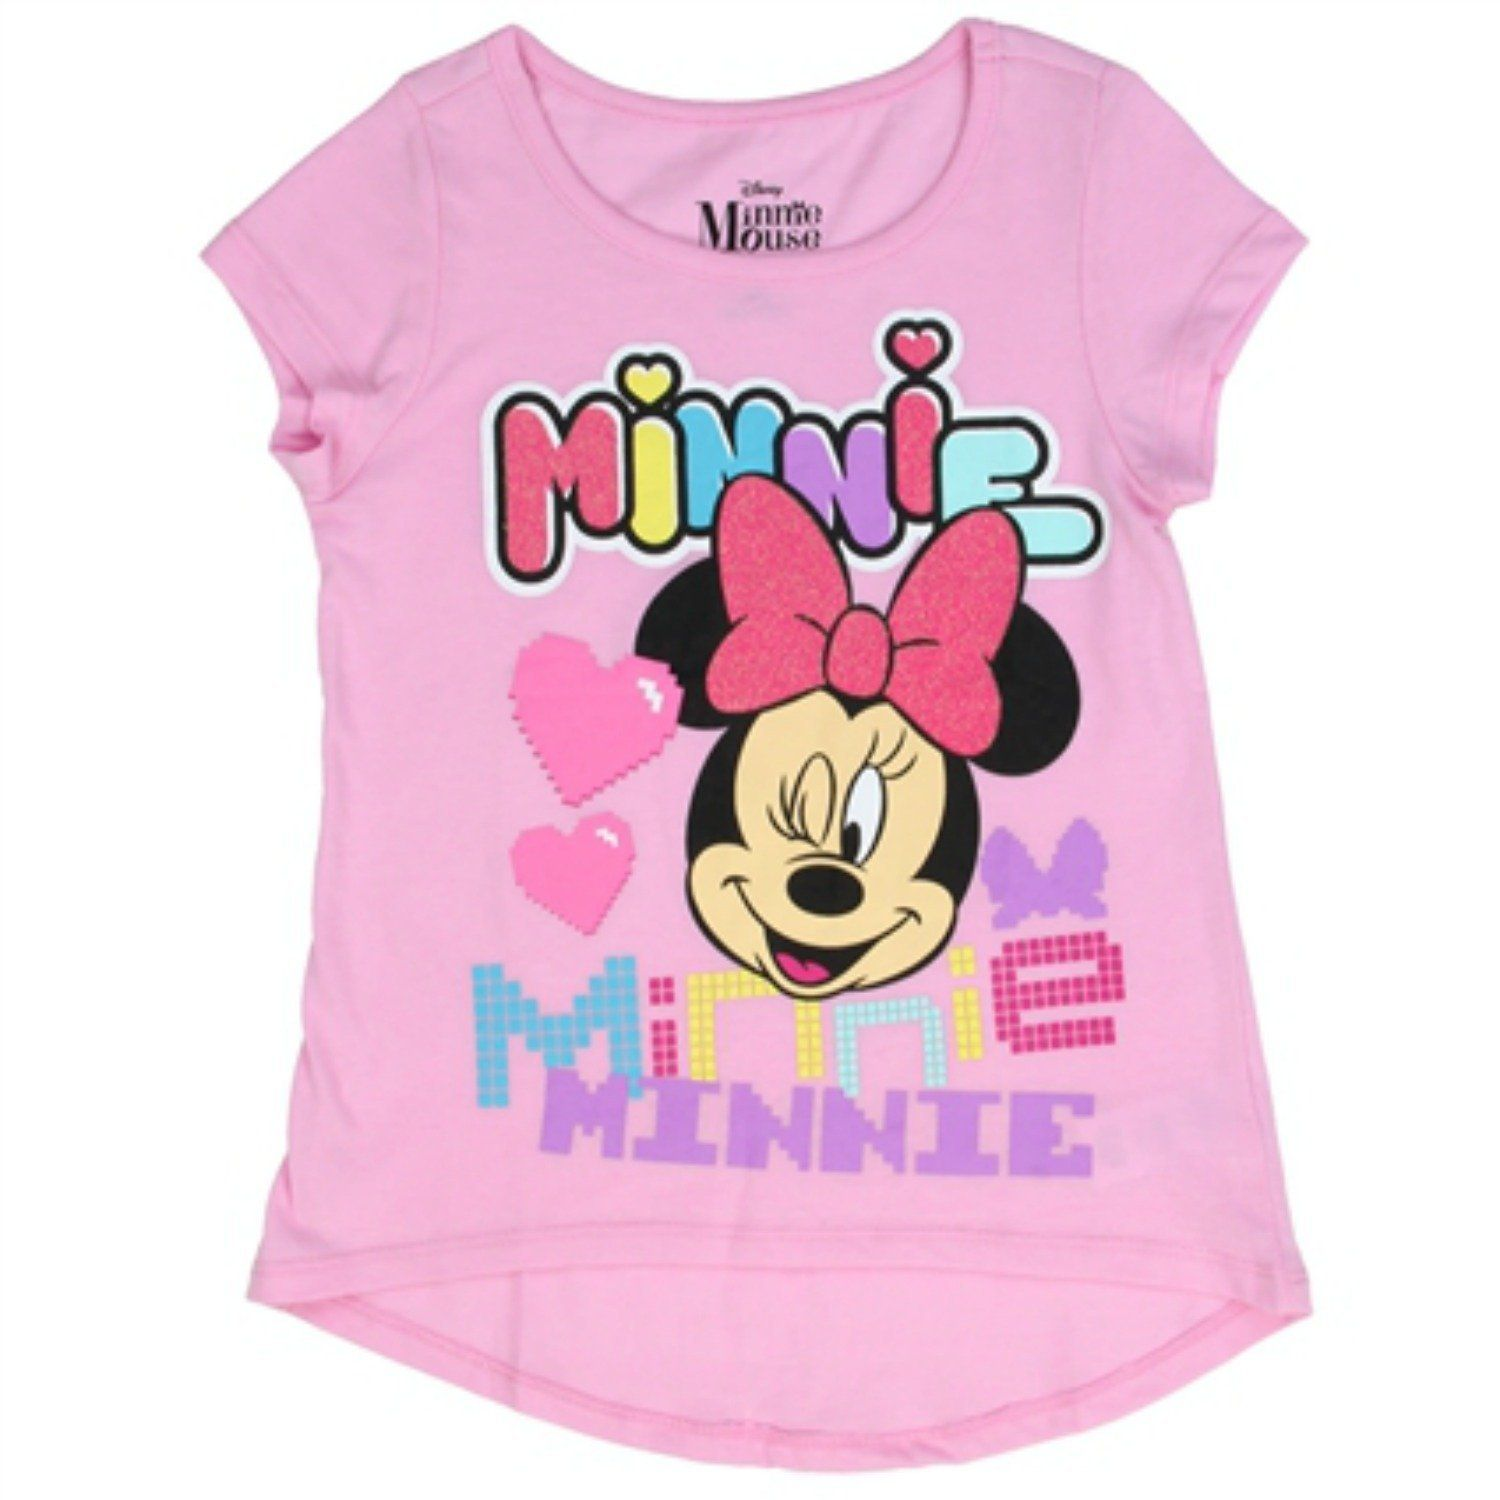 Amazon.com: Disney Girls' Minnie Mouse T-Shirt: Pink Clothing